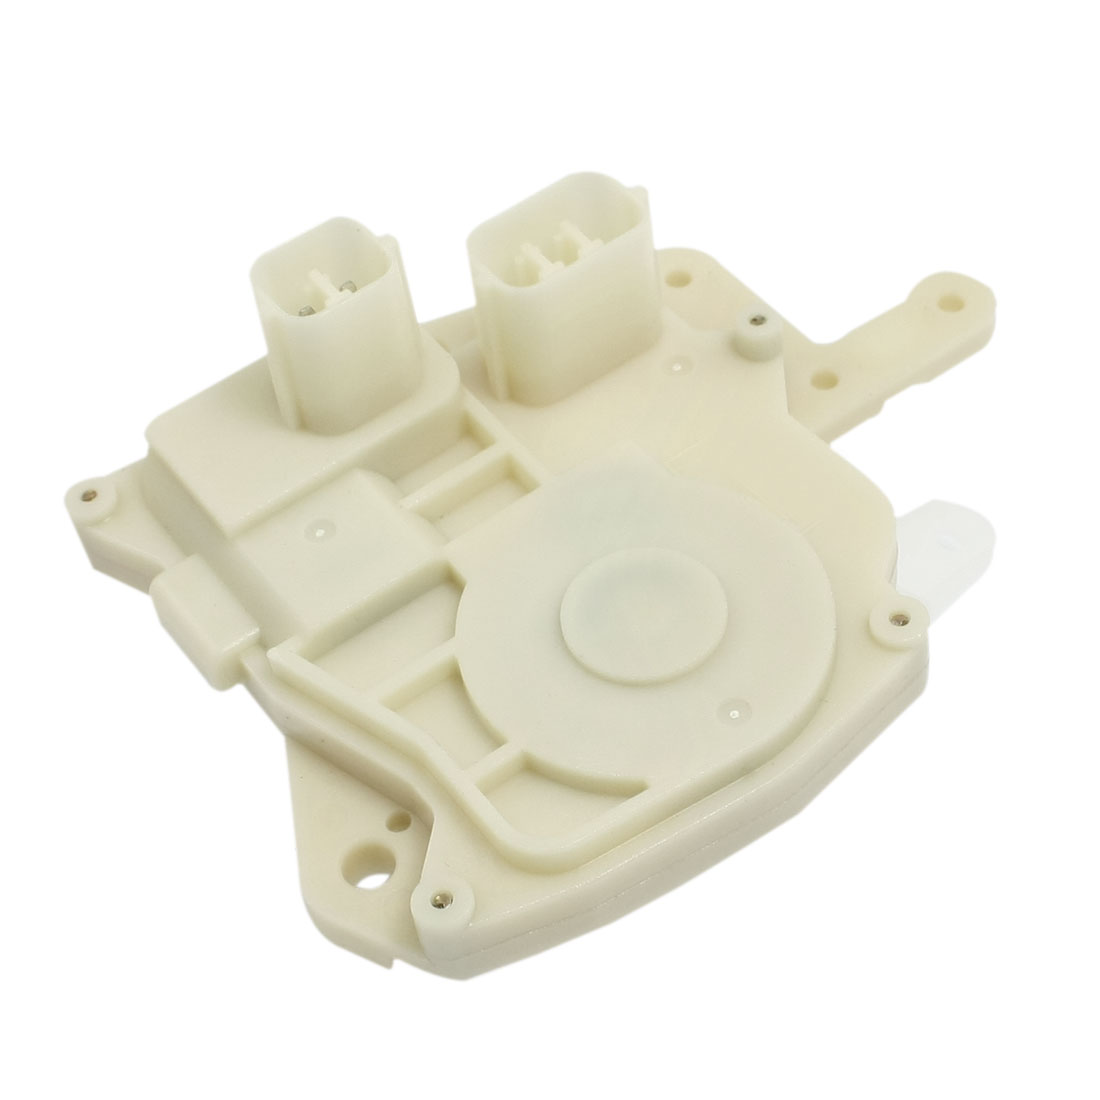 Beige Plastic Left Rear Power Door Lock Actuator Part 72655-S84-A01